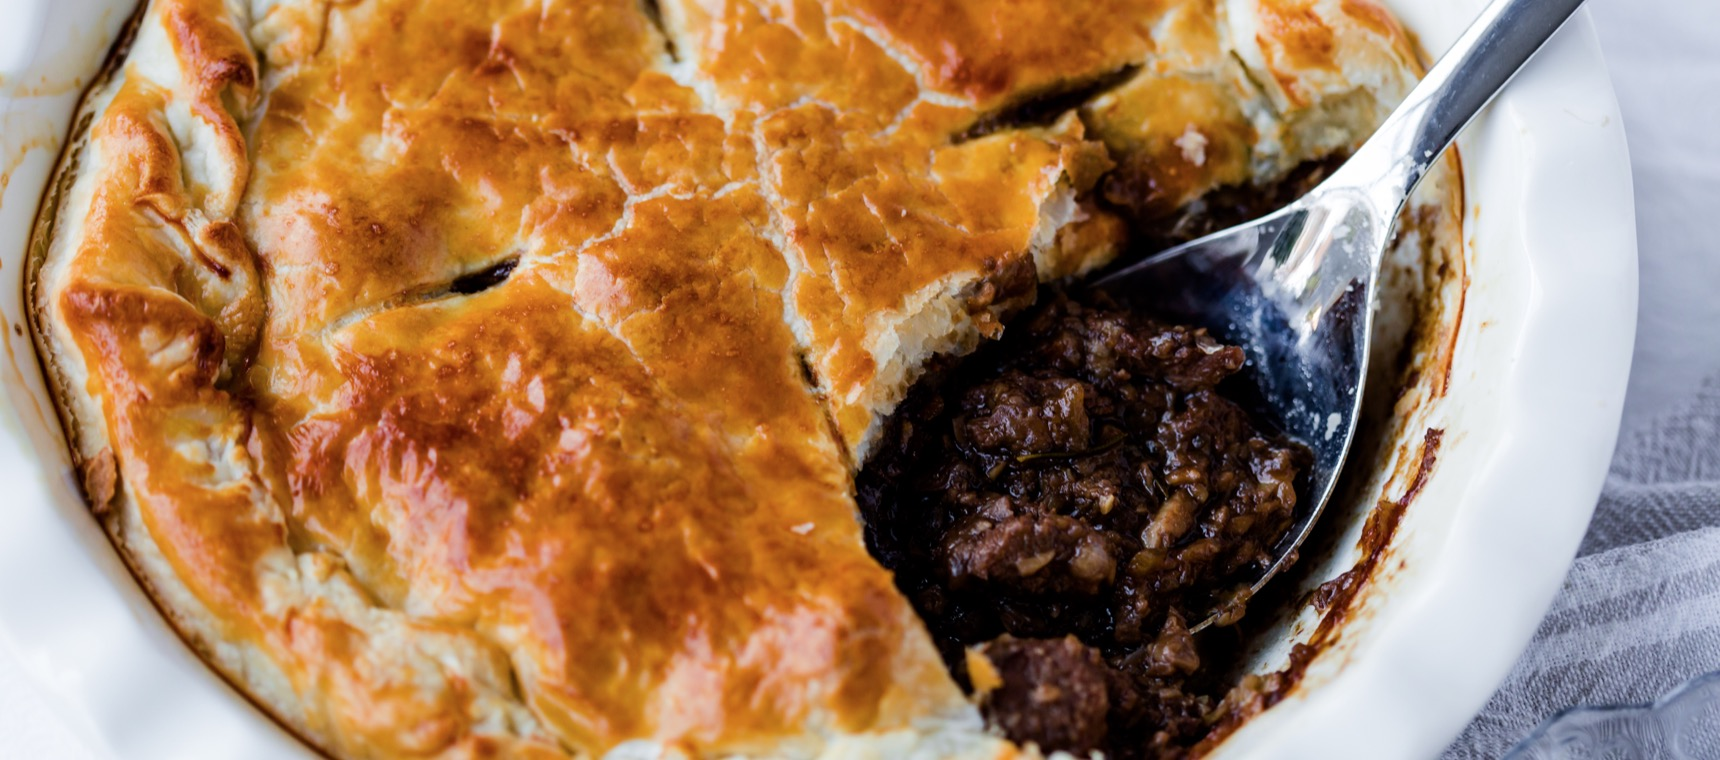 Steak & Ale Pie - The 4 Blades